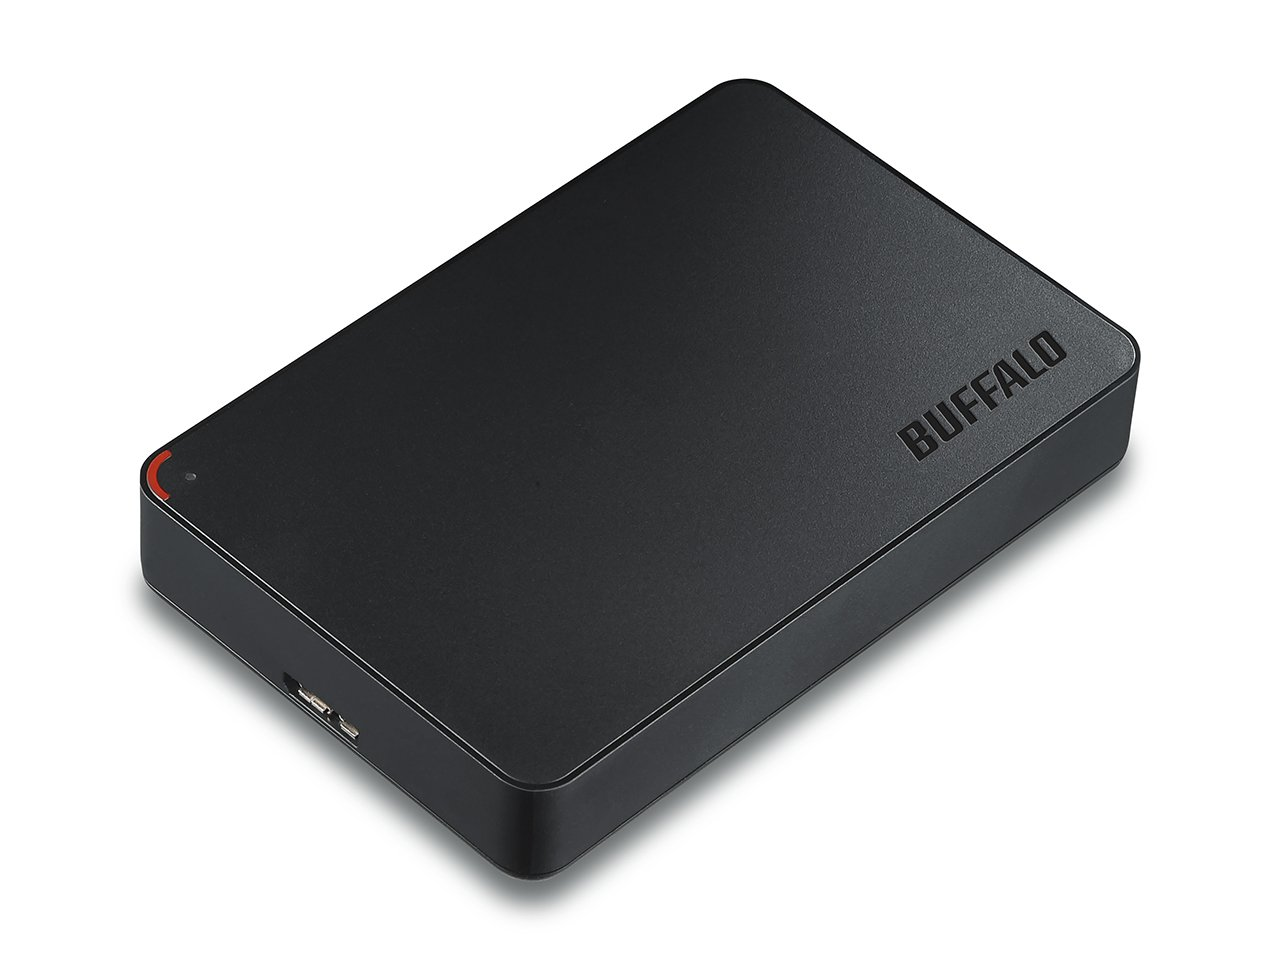 BUFFALO MiniStation 2TB USB 3.0 Portable Hard Drive